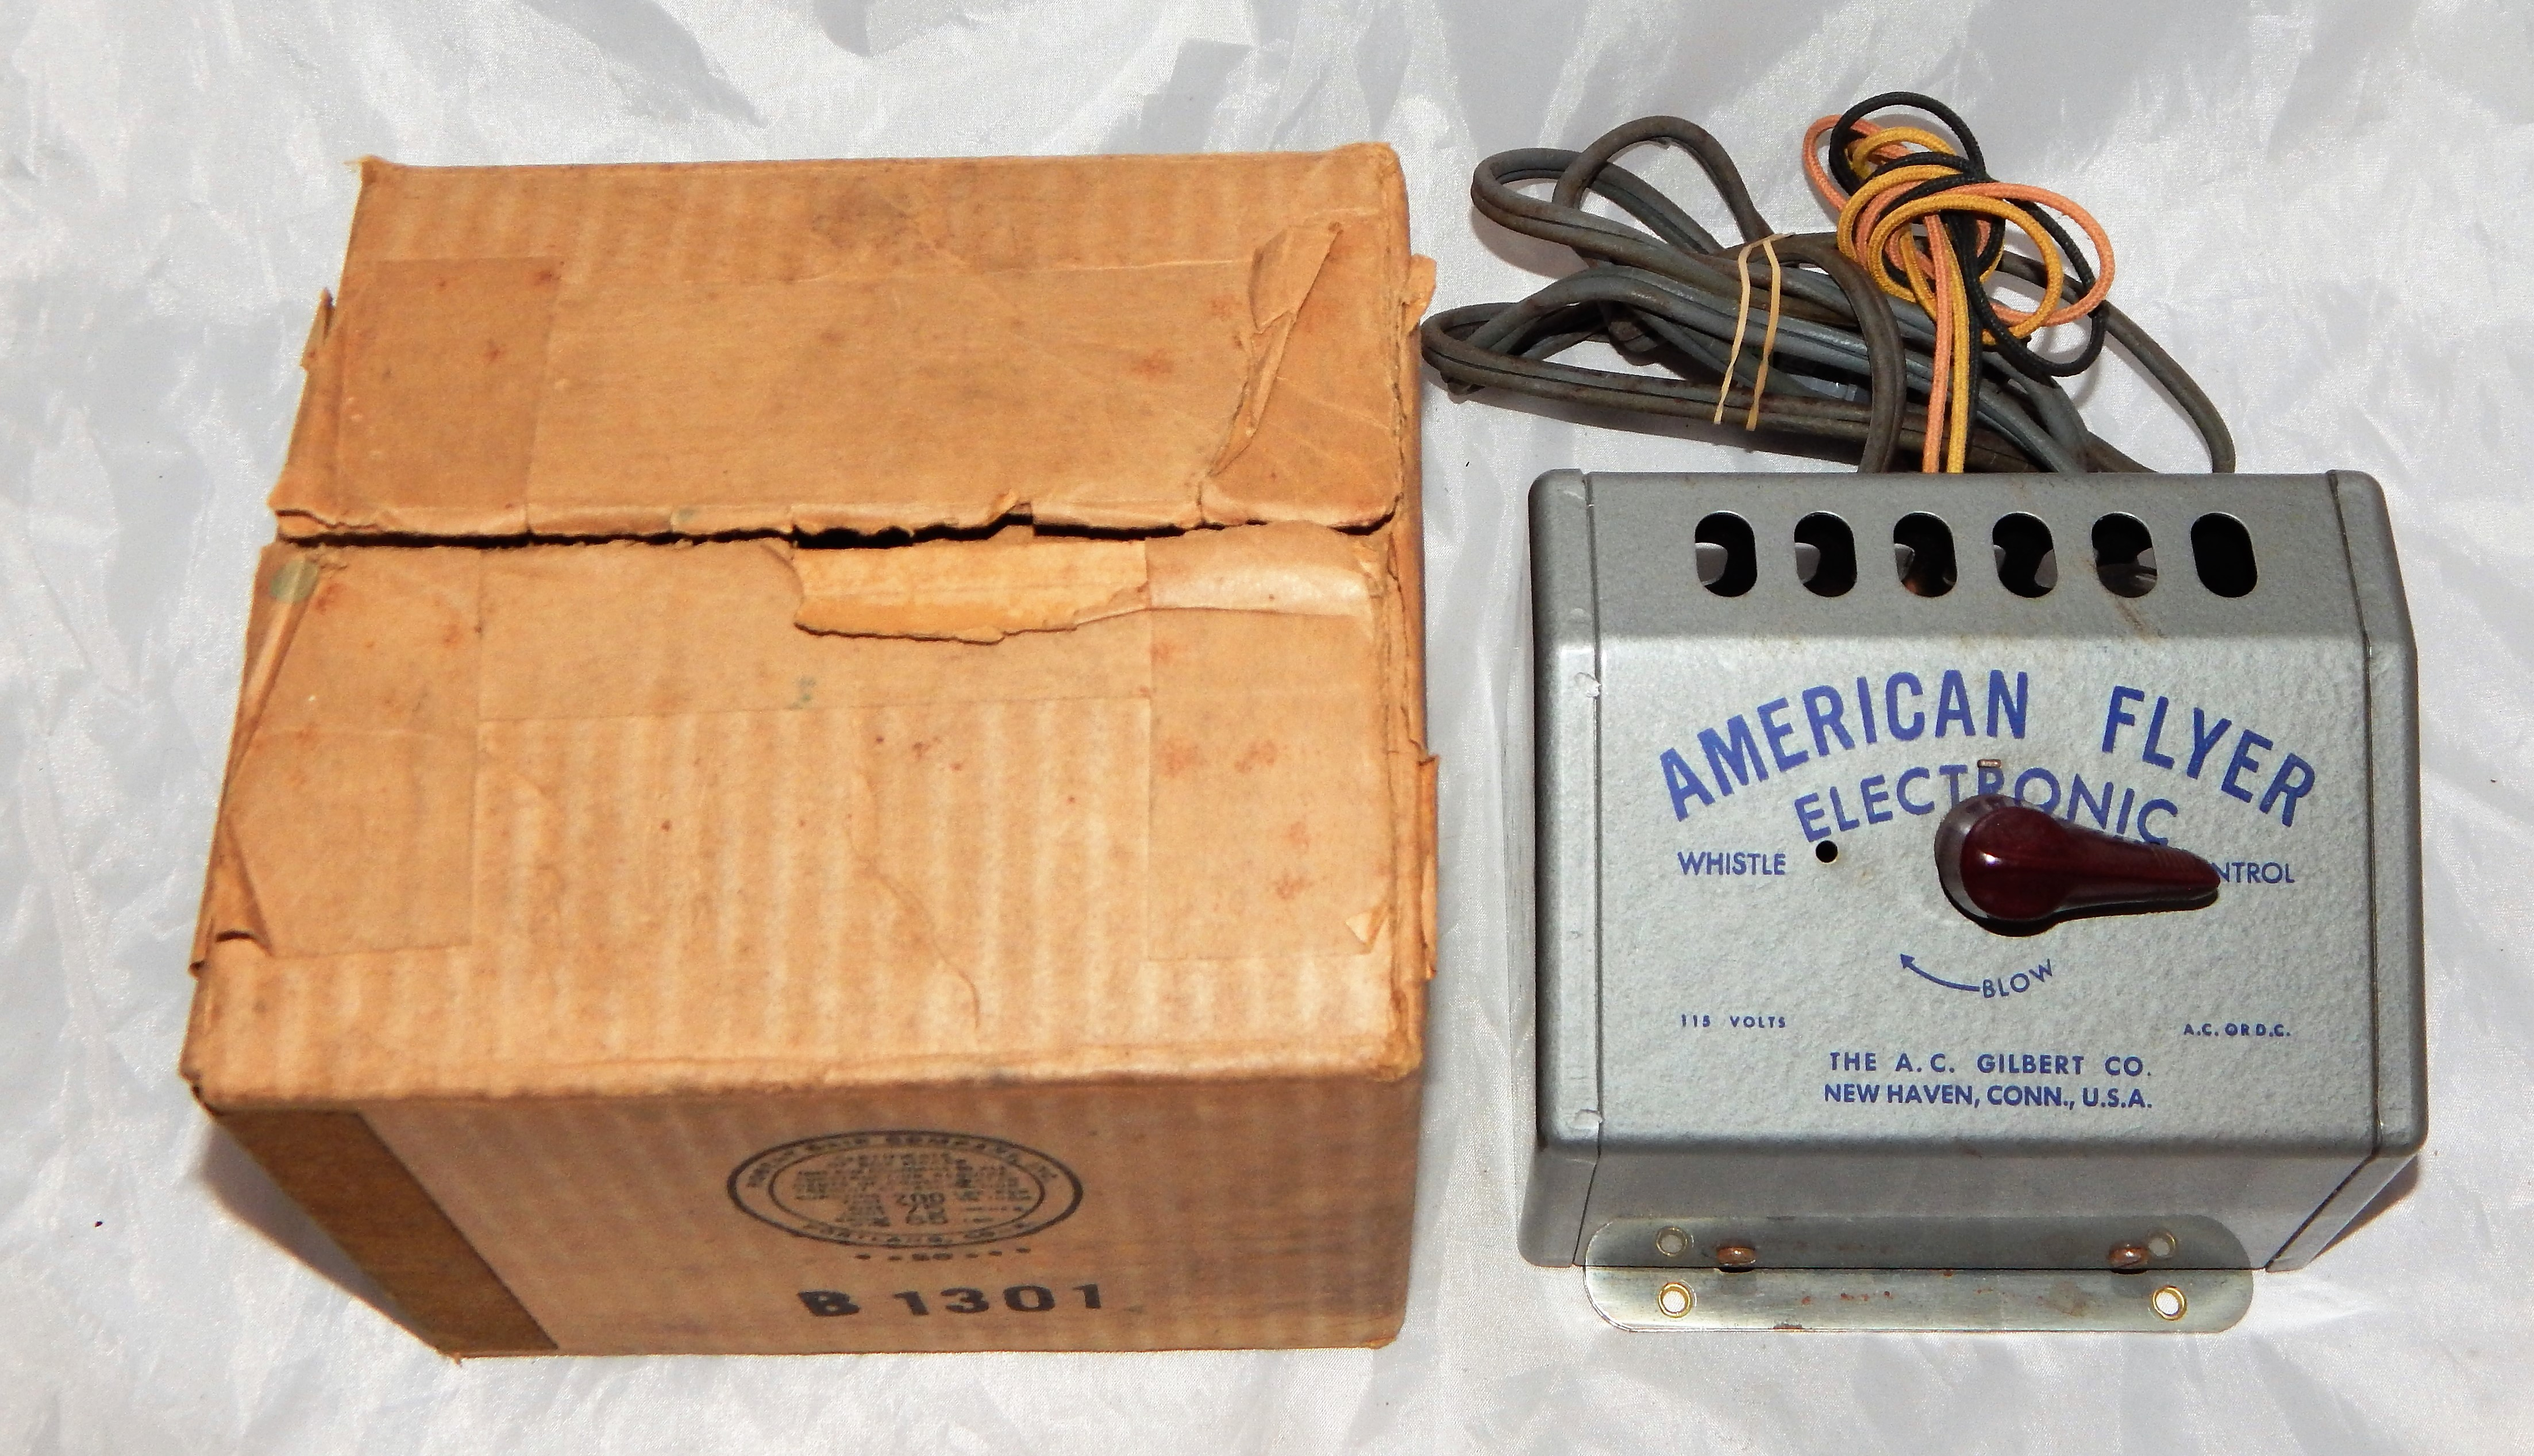 Clean American Flyer Electronic Whistle Control S gauge 1950 for 324ac 334dc S